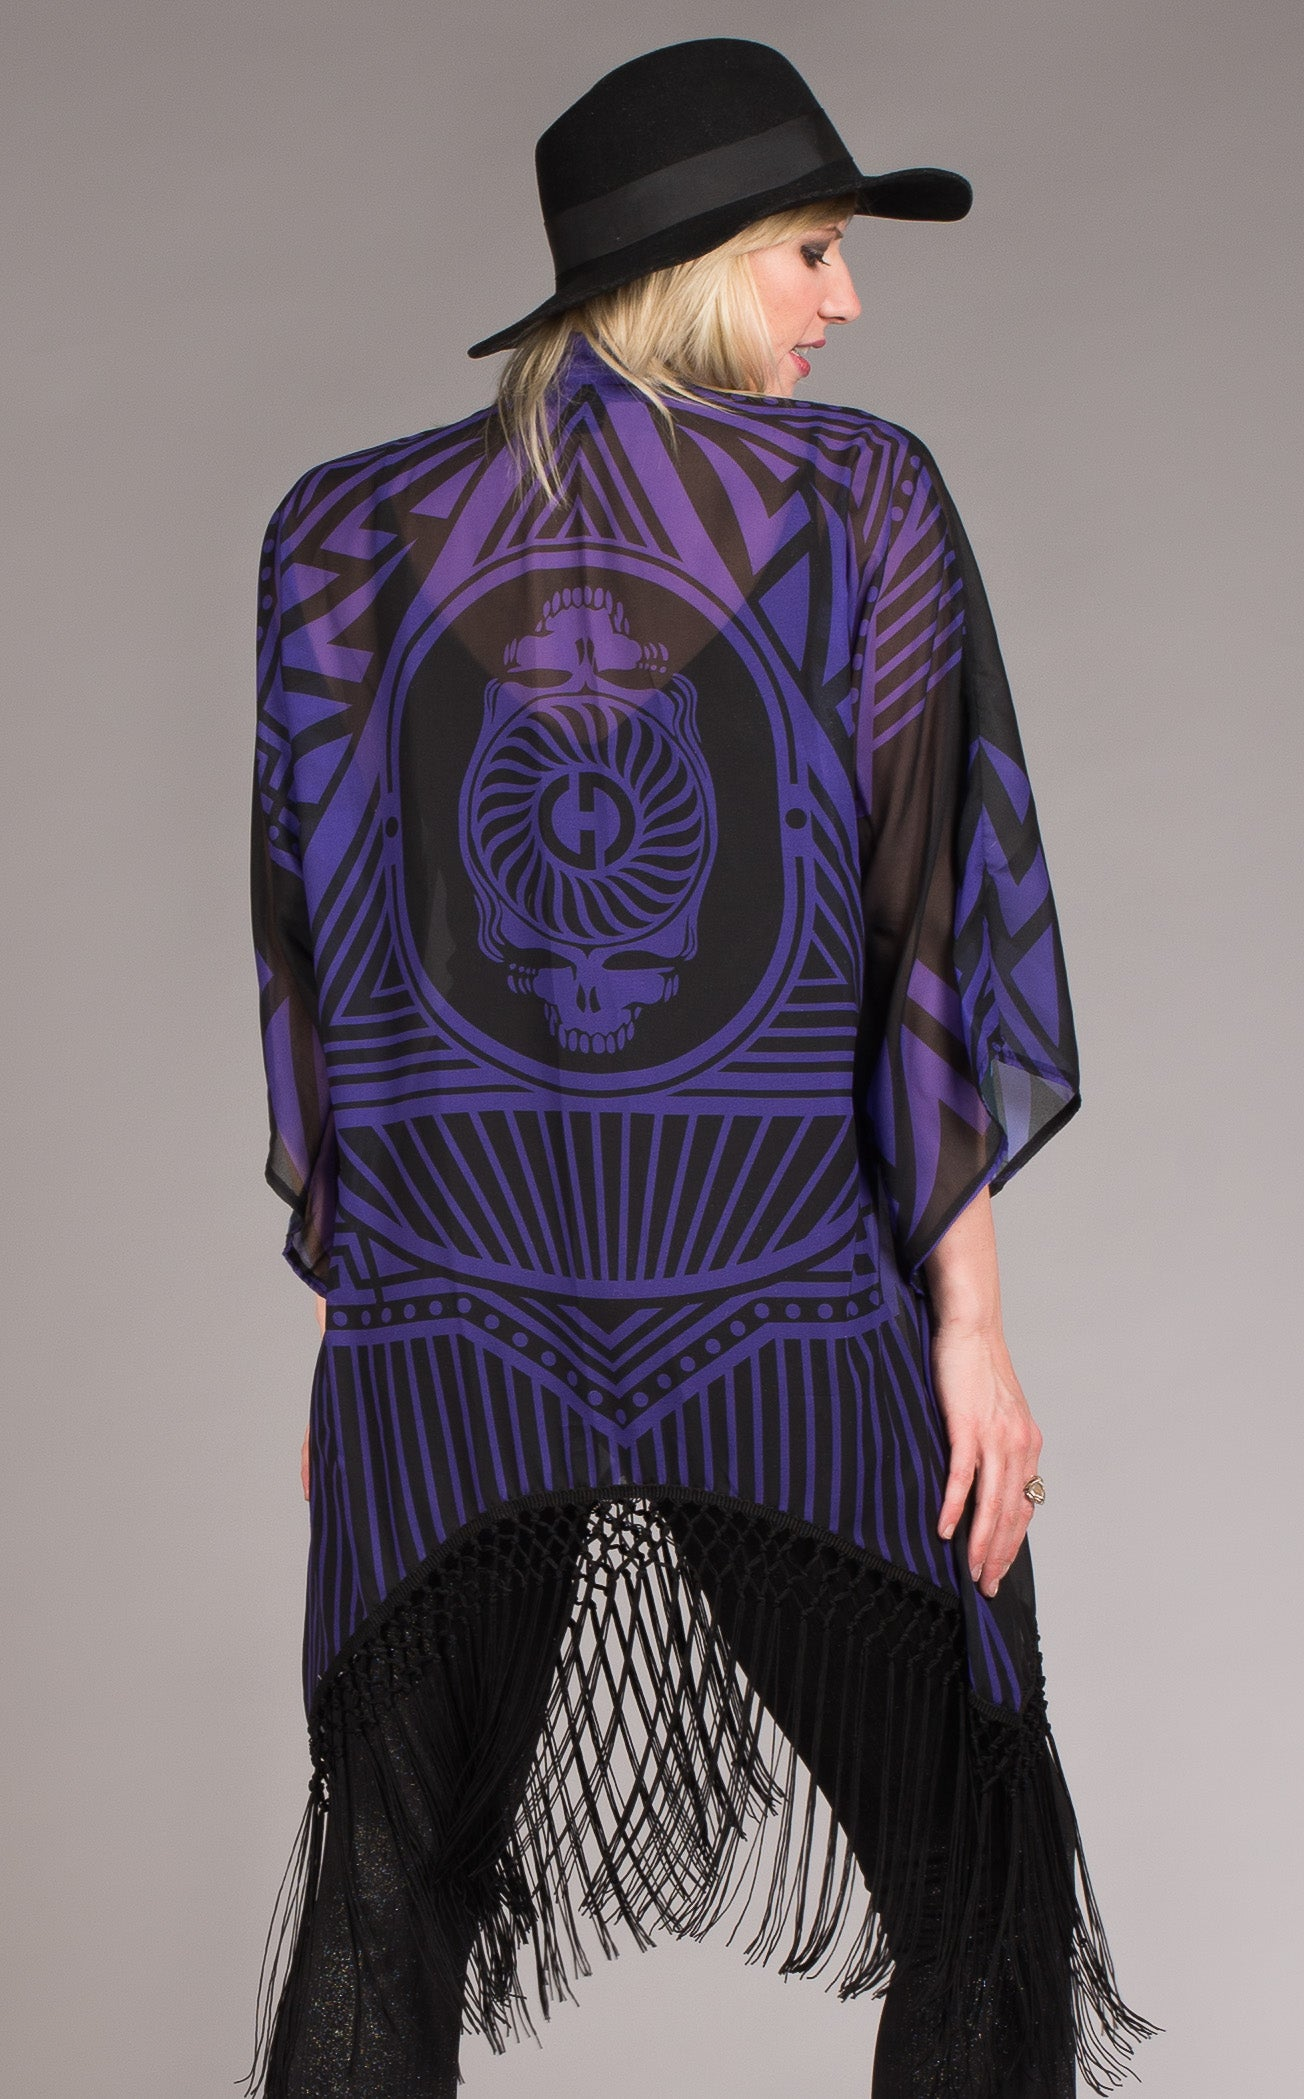 Grateful Dead Clothing-fringed purple and black skeleton kimono